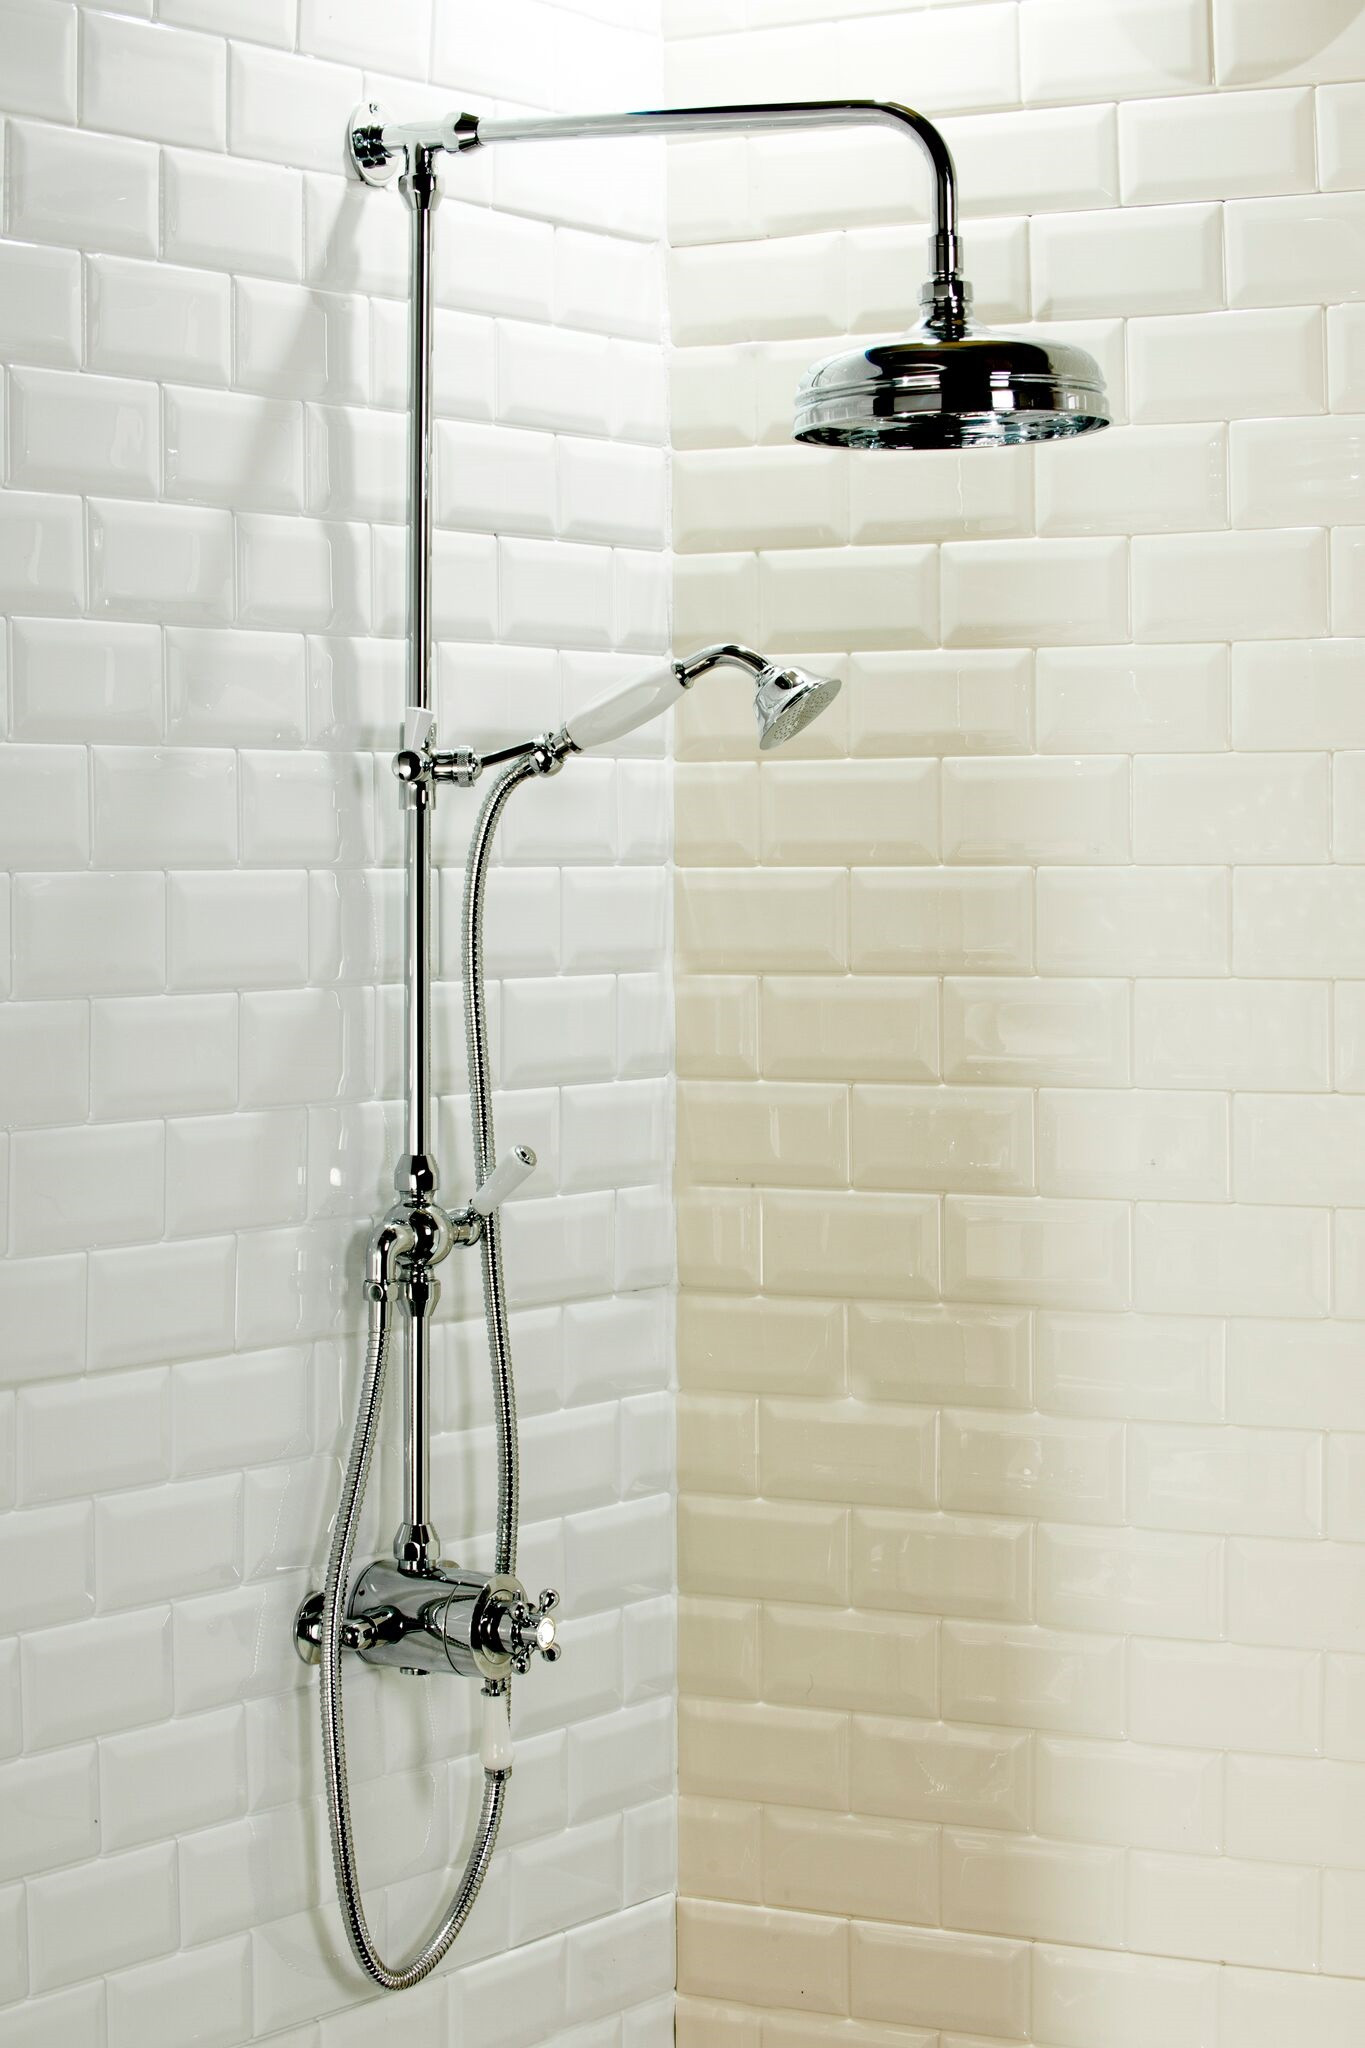 Windsor Exposed Thermostatic Valve And Rigid Riser Kit With Diverter